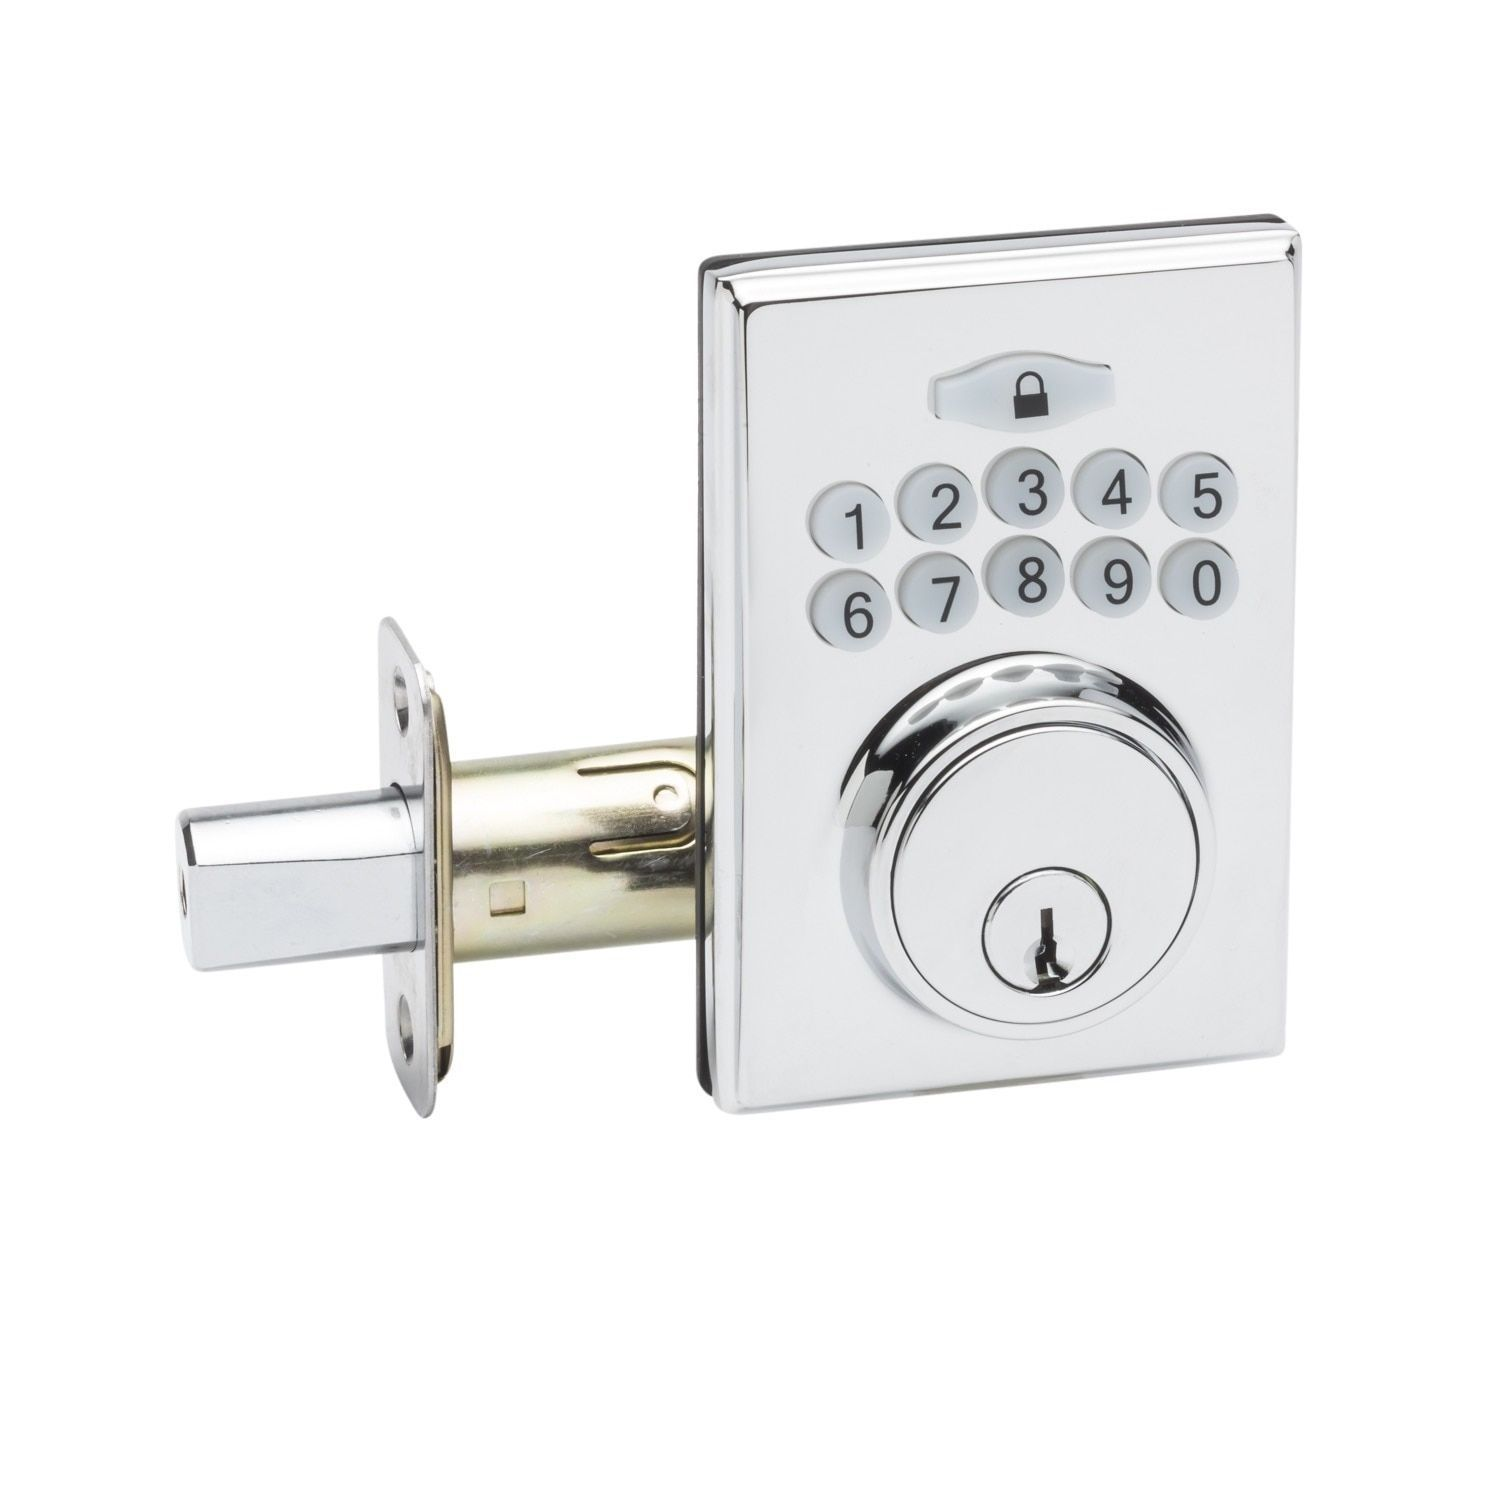 door kwikset pin cylinder z in doors wave double hardware lock new deadbolt smartkey other knob